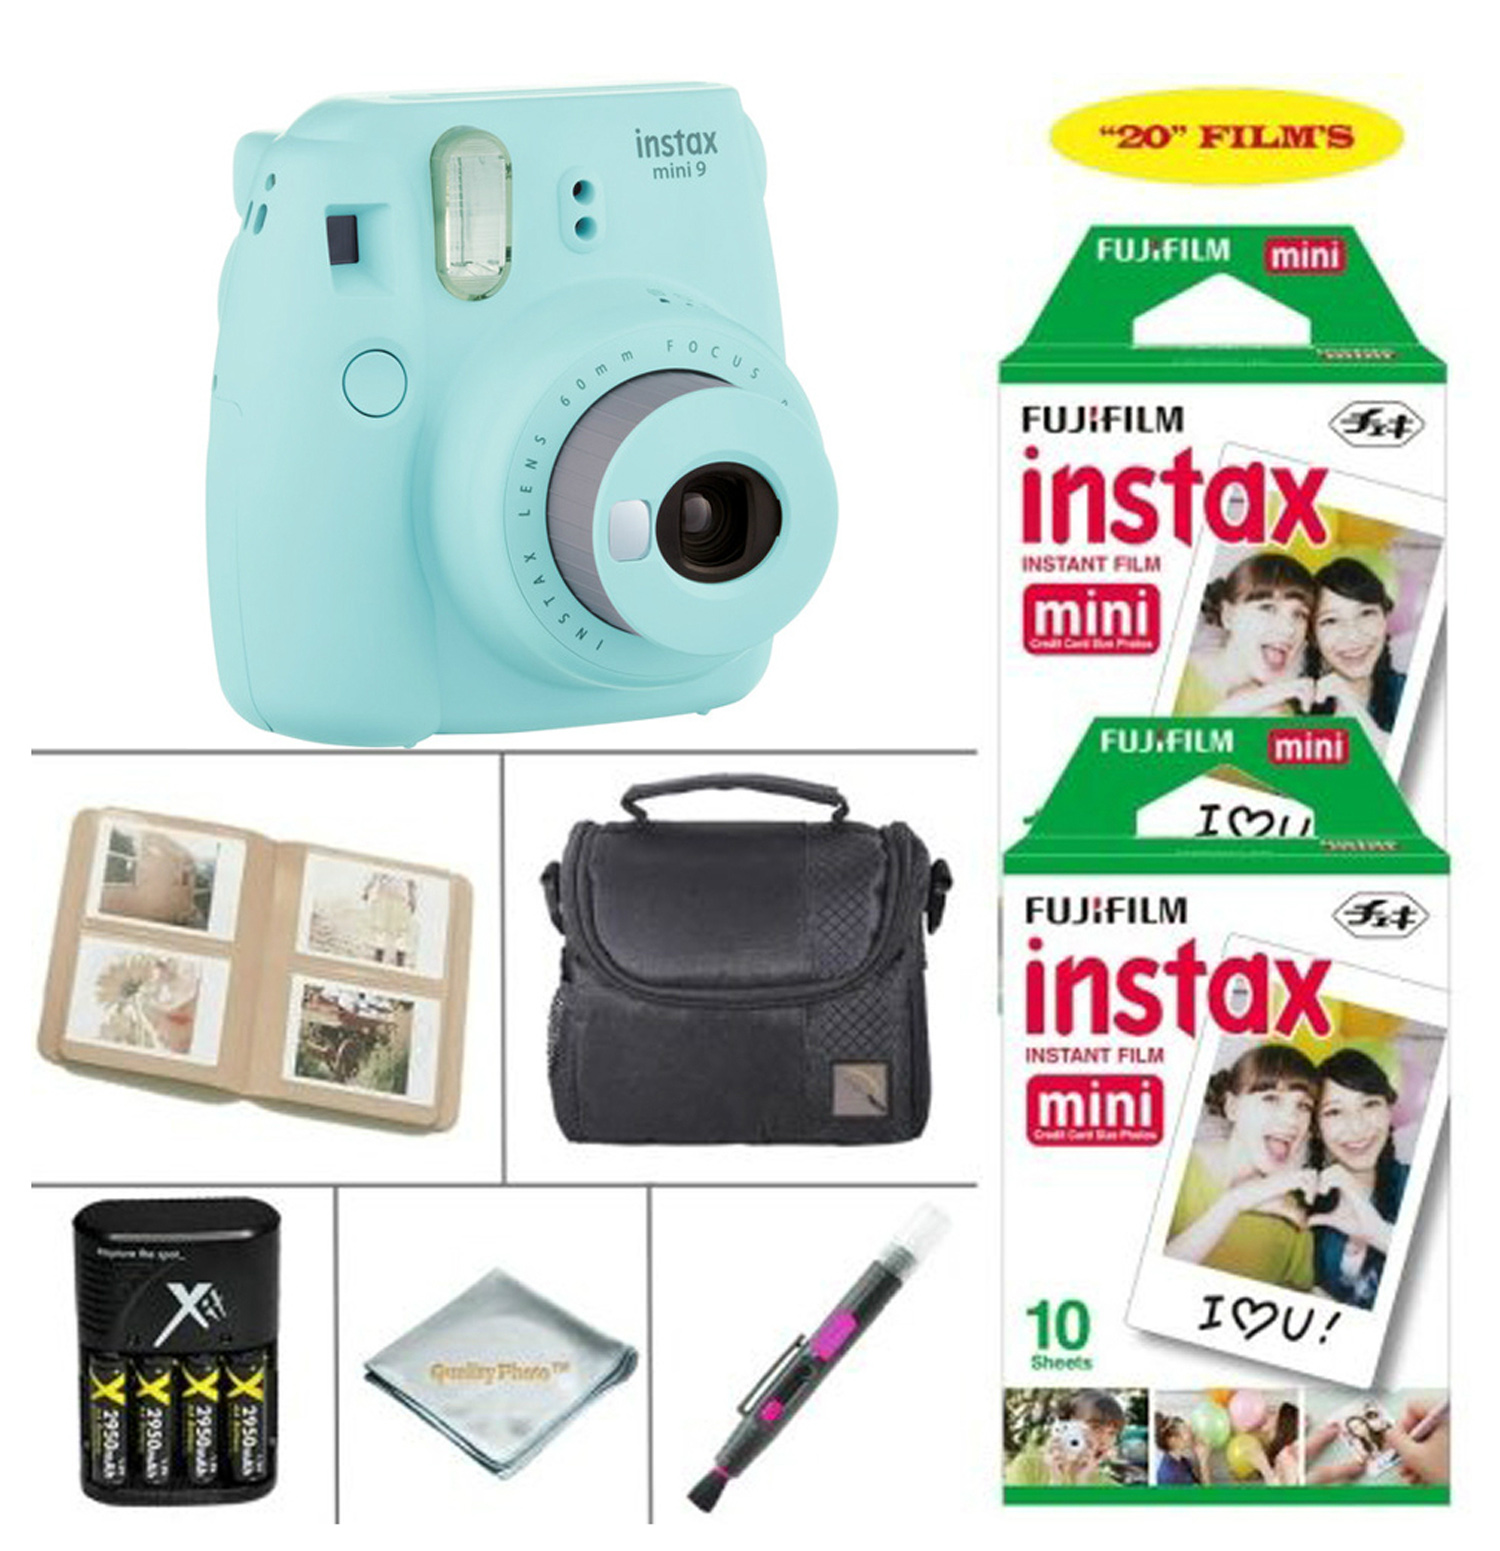 Fujifilm Instax Mini 9 Ice Blue Camera + Accessory kit for Fujifilm Instant Camera, includes Fuji Instax Film 20 Sheets + 4 Battery & Charger + Photo Album + Instax Case + MORE